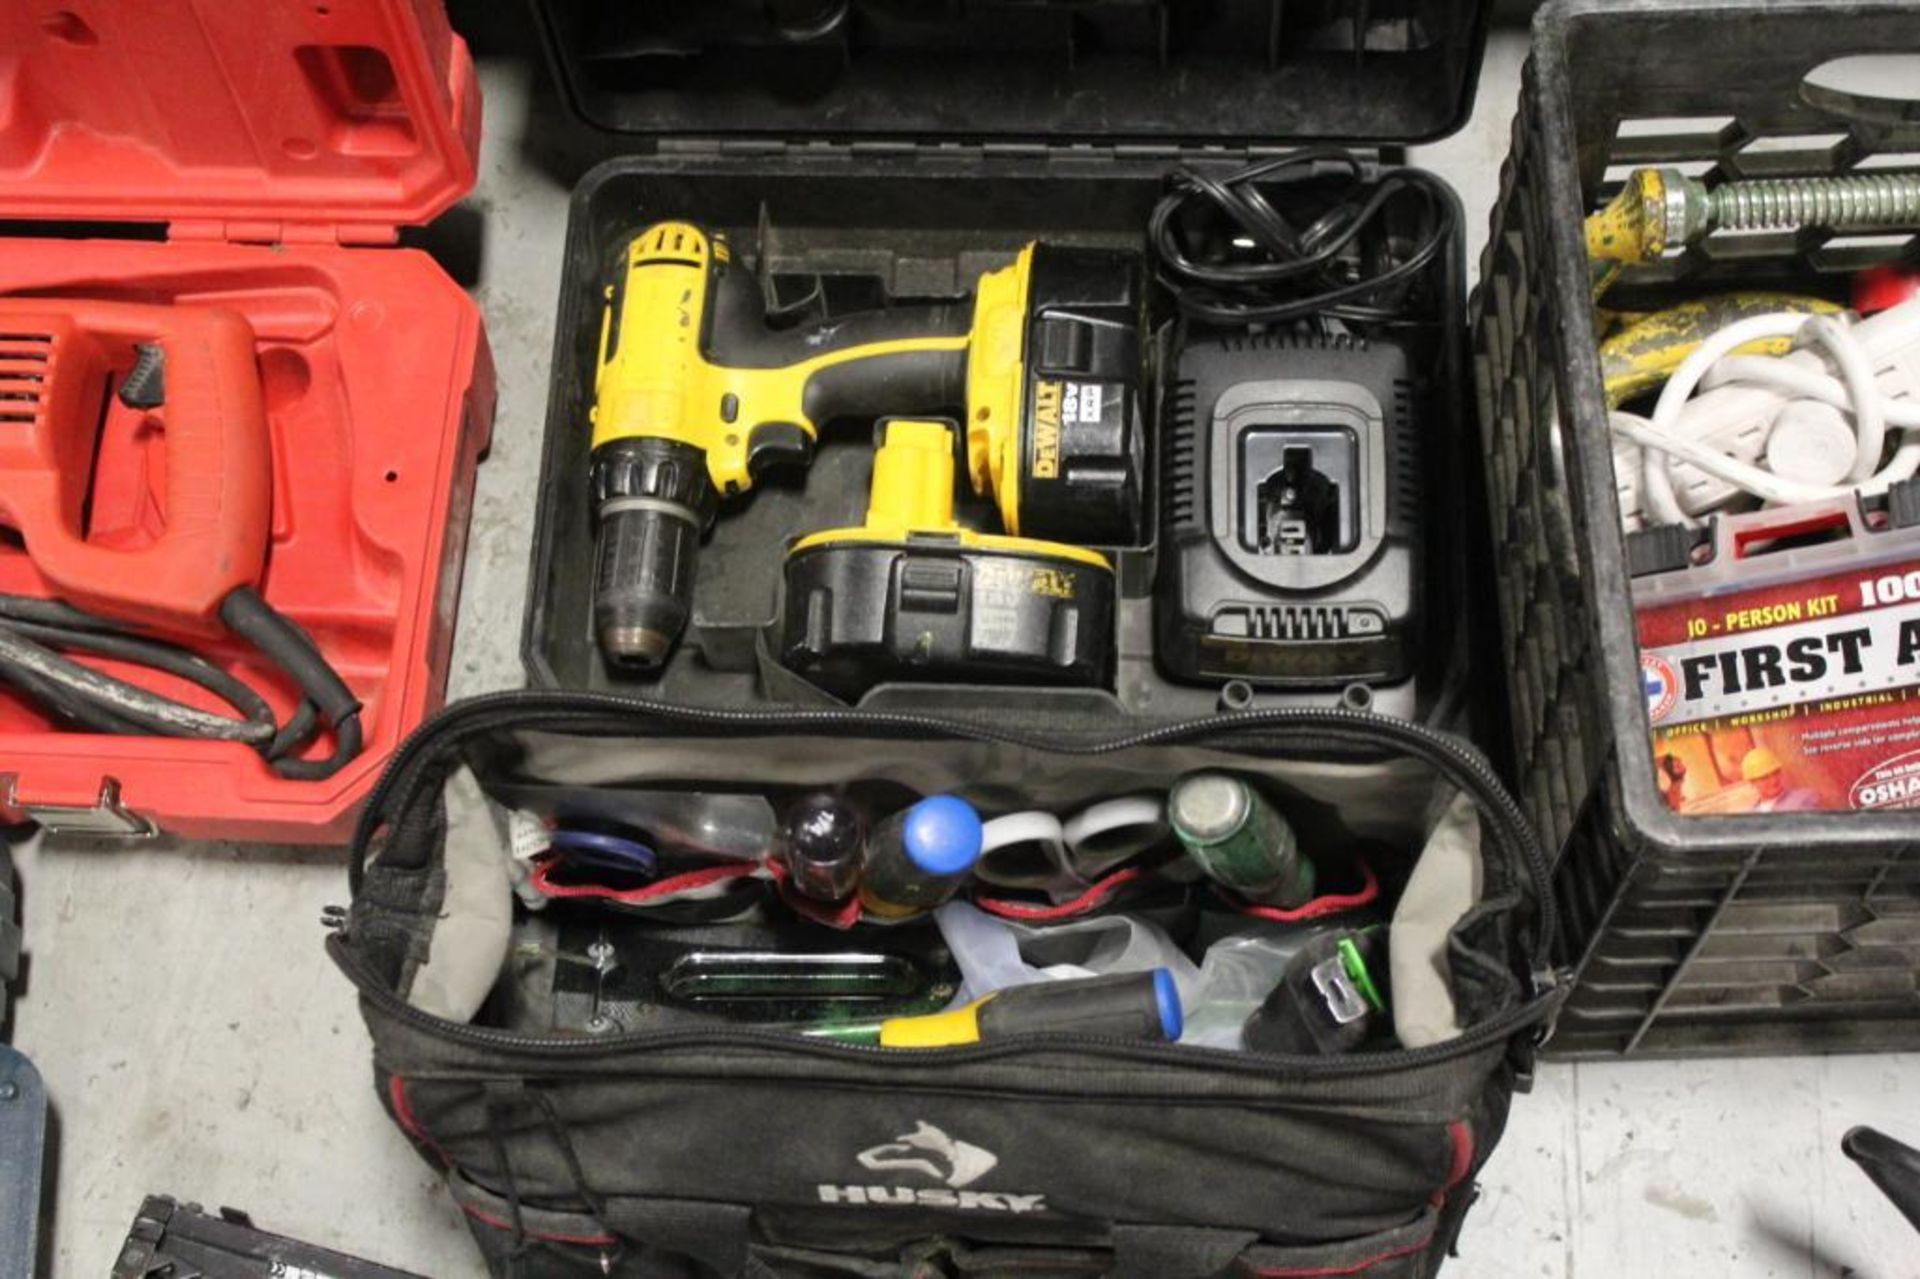 Greenlee tool box w/contents - Image 4 of 7